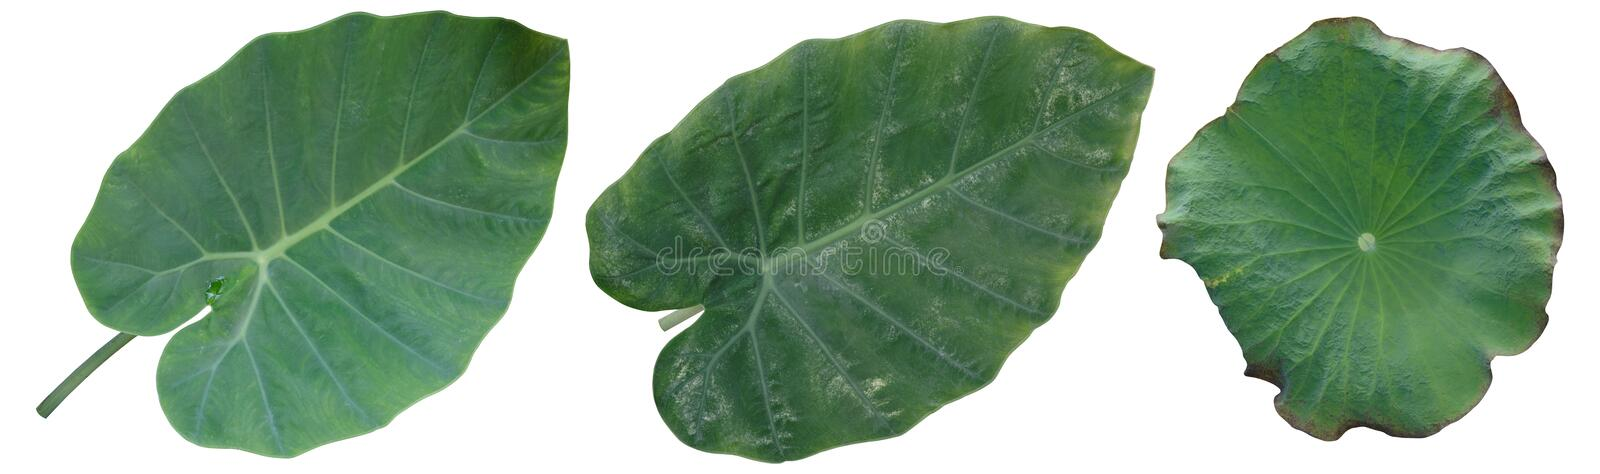 Taro leaves, lotus leaves isolated on white background. Clipping path stock images